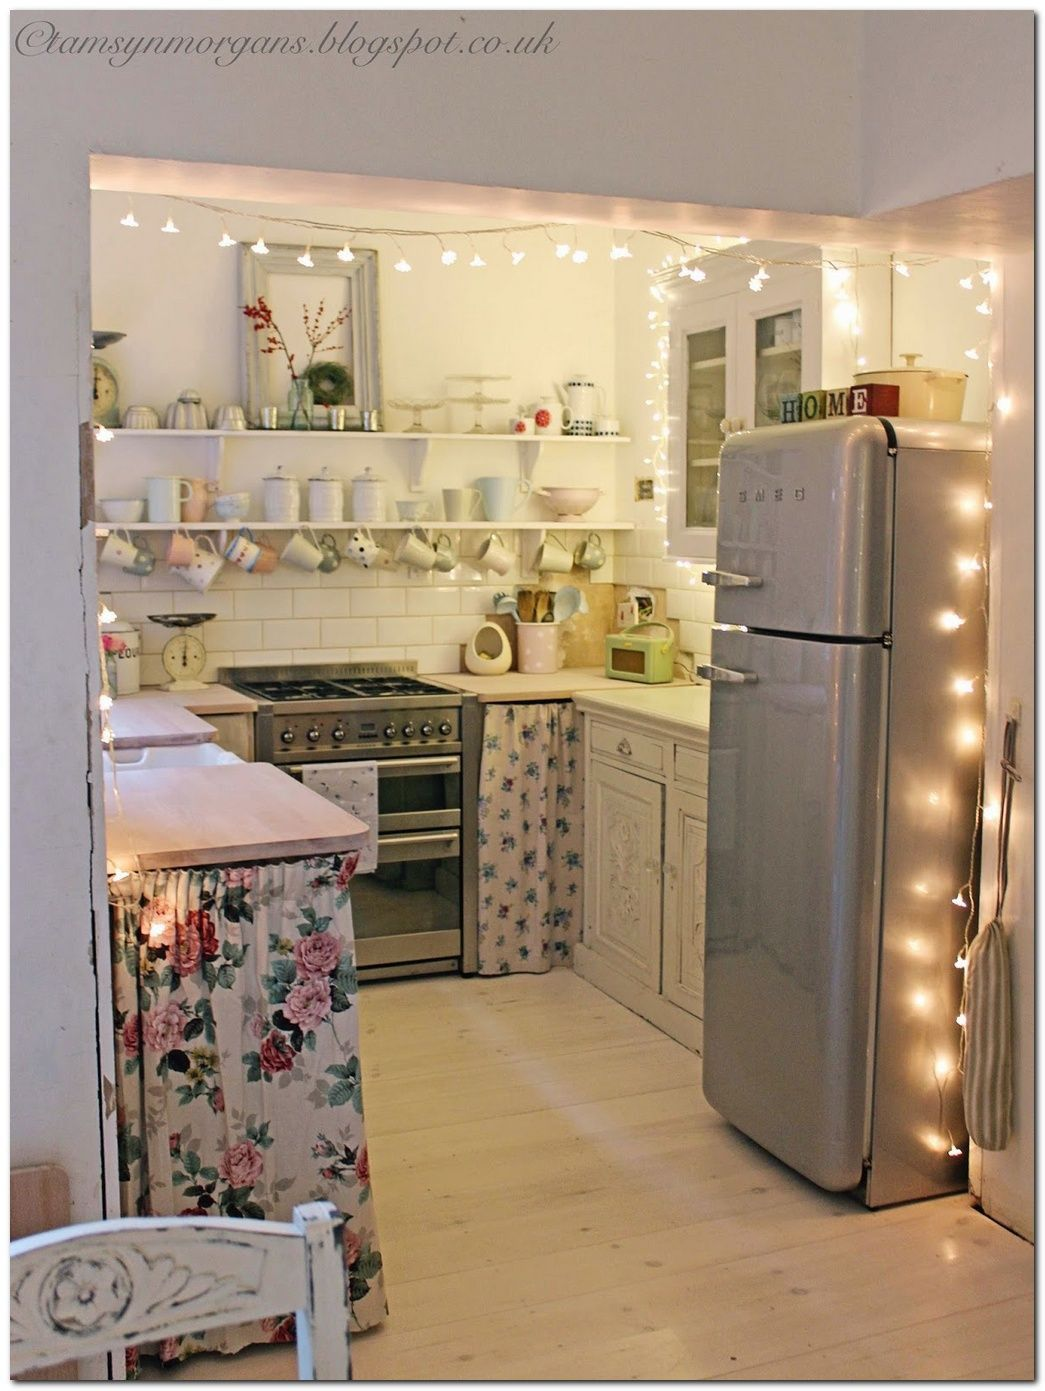 Lovely Apartment Kitchen Ideas Decoration 50 Ideas To Decorate Small Apartment On A Bud Diy Small Apartment Cozy Apartment Decor Small Apartment Kitchen